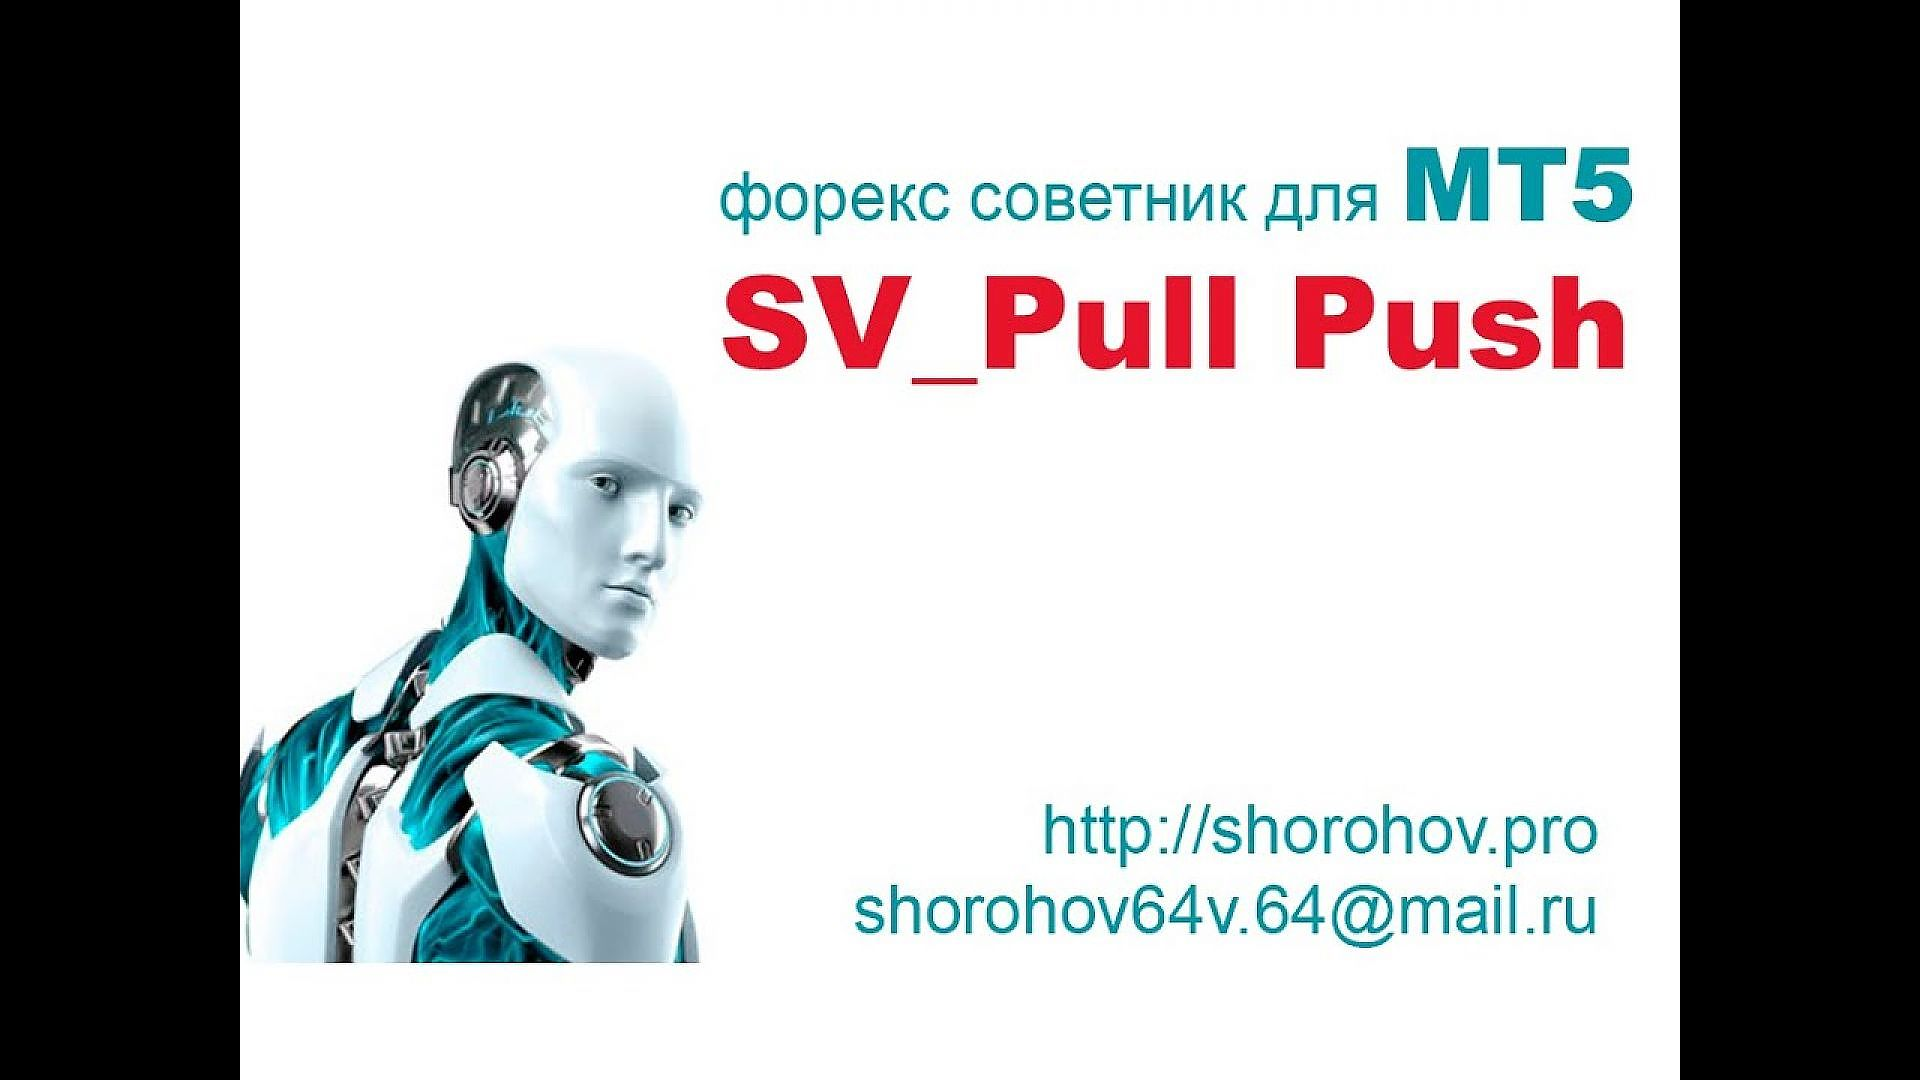 SV Pull Push Advisor (Open Source)